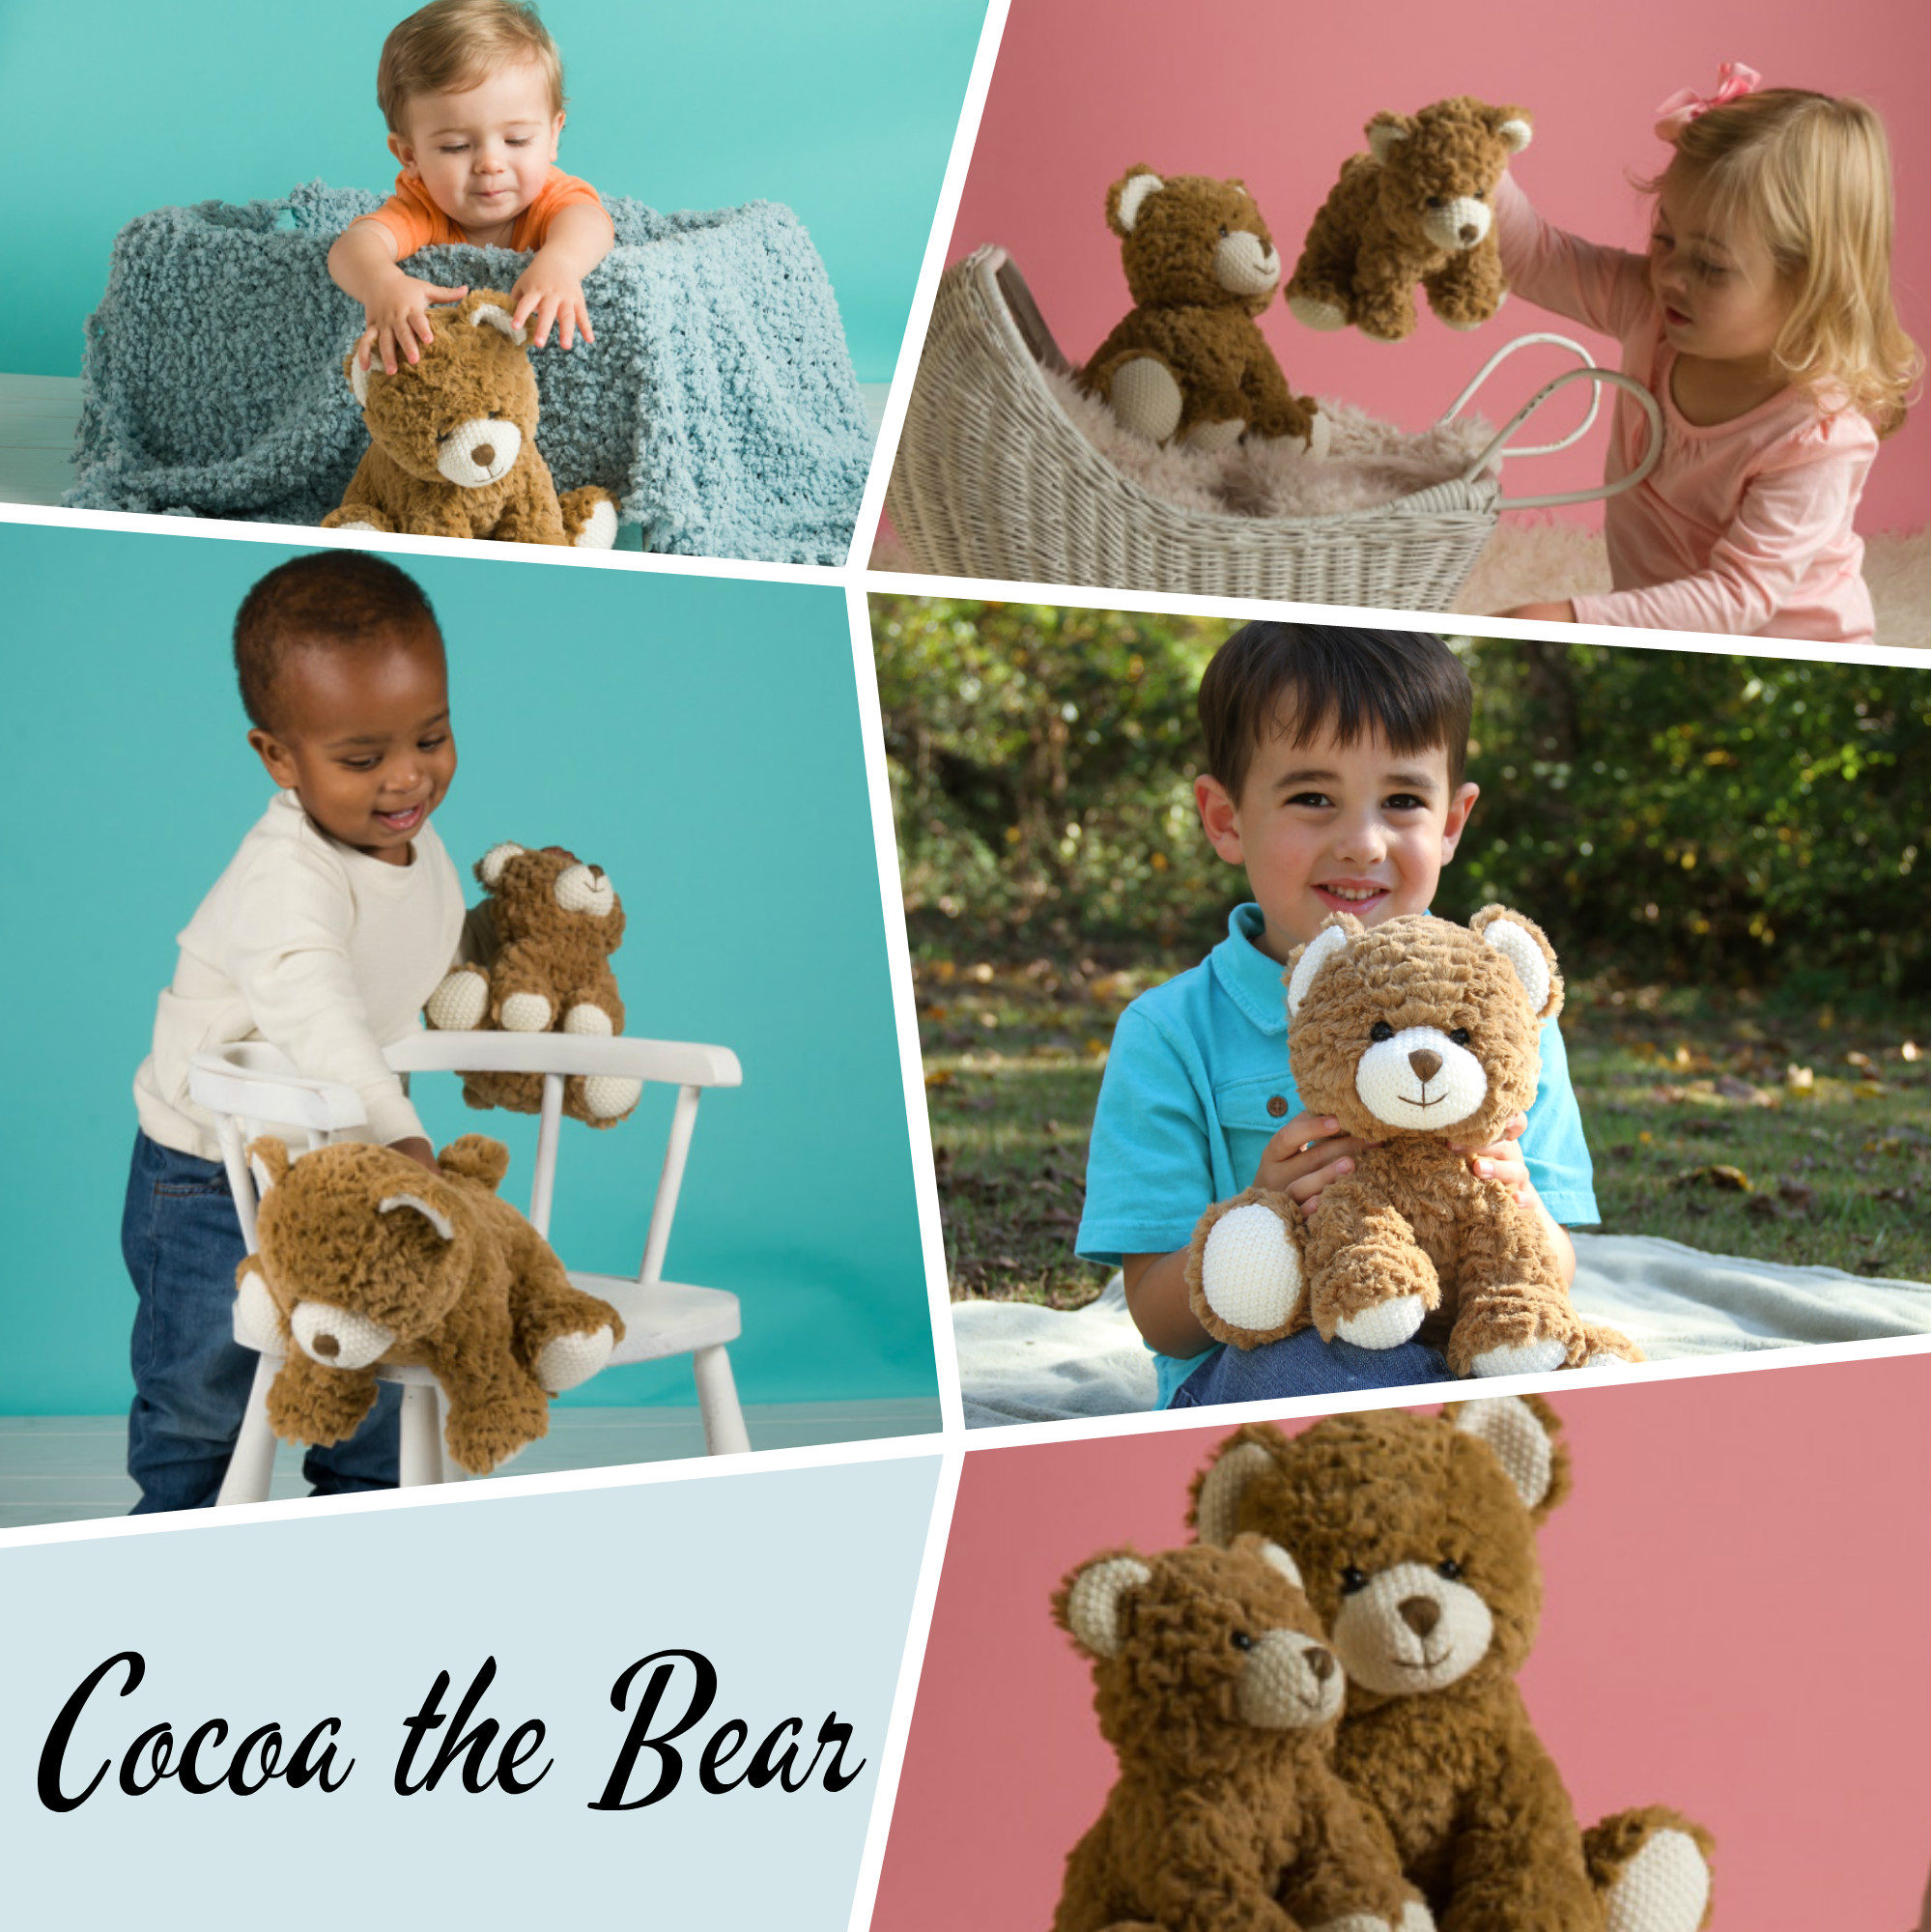 Cocoa the Bear